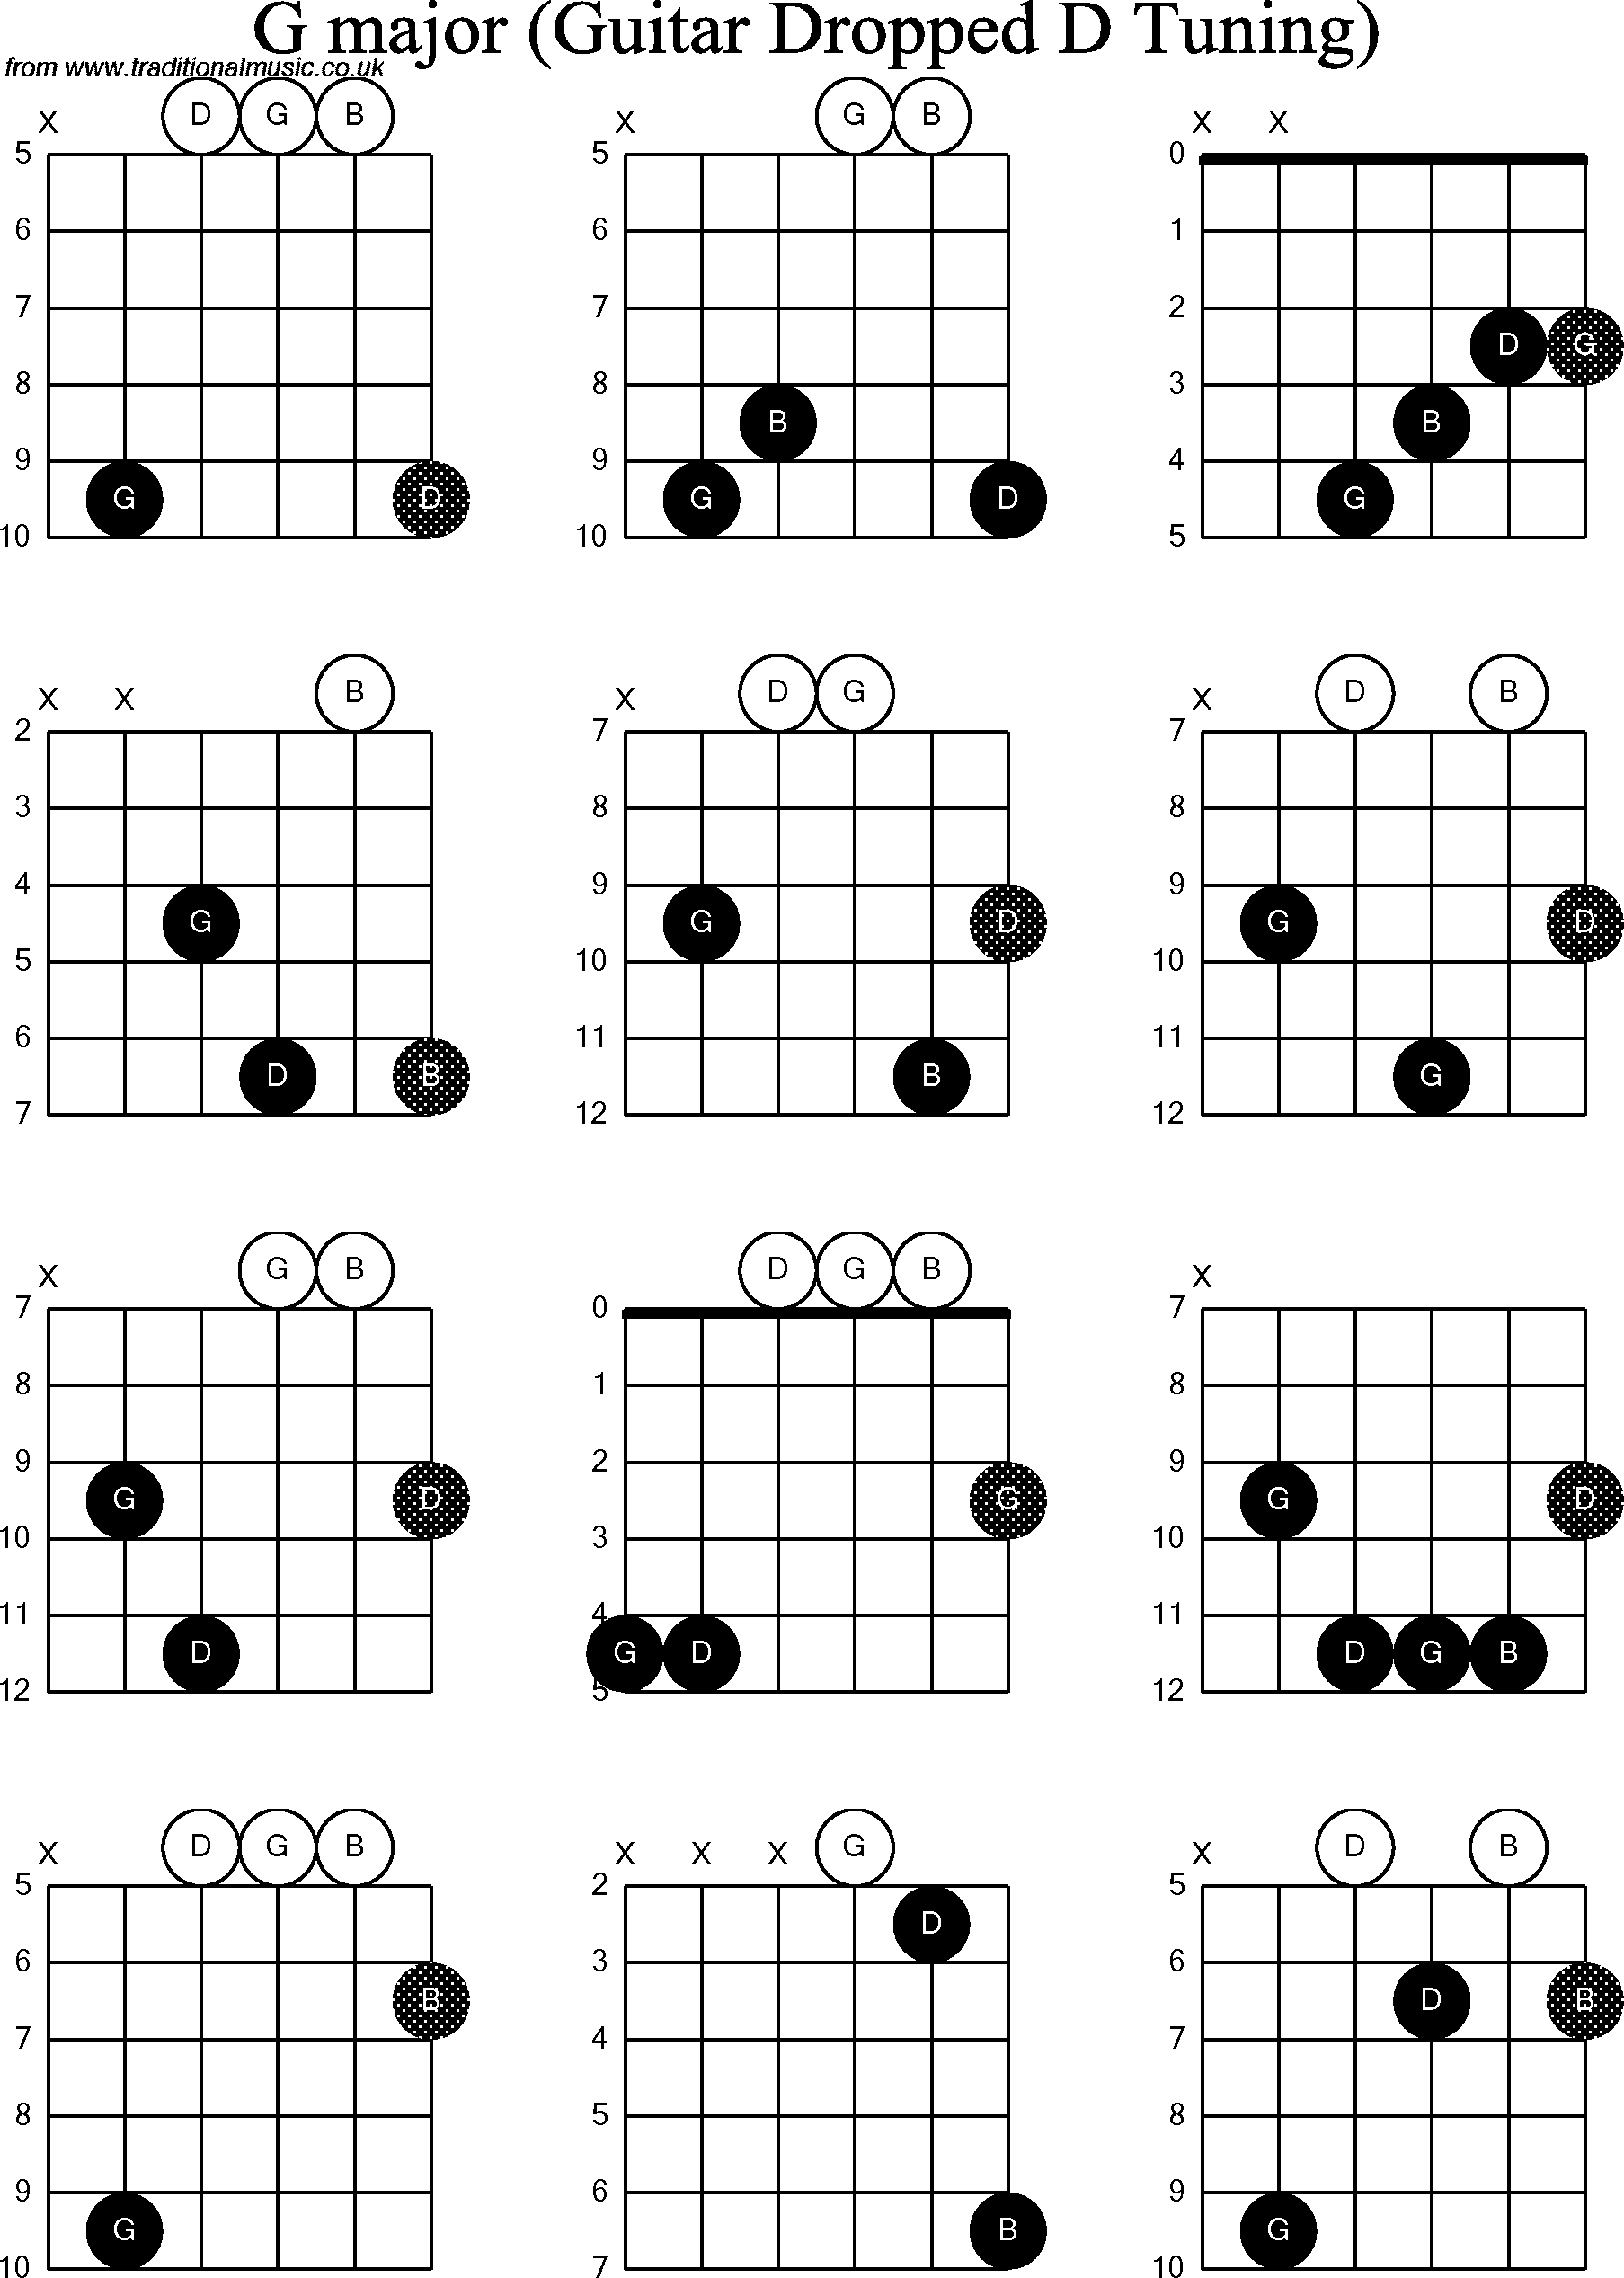 Chord diagrams for dropped d guitardadgbe g chord diagrams for dropped d guitardadgbe g hexwebz Choice Image